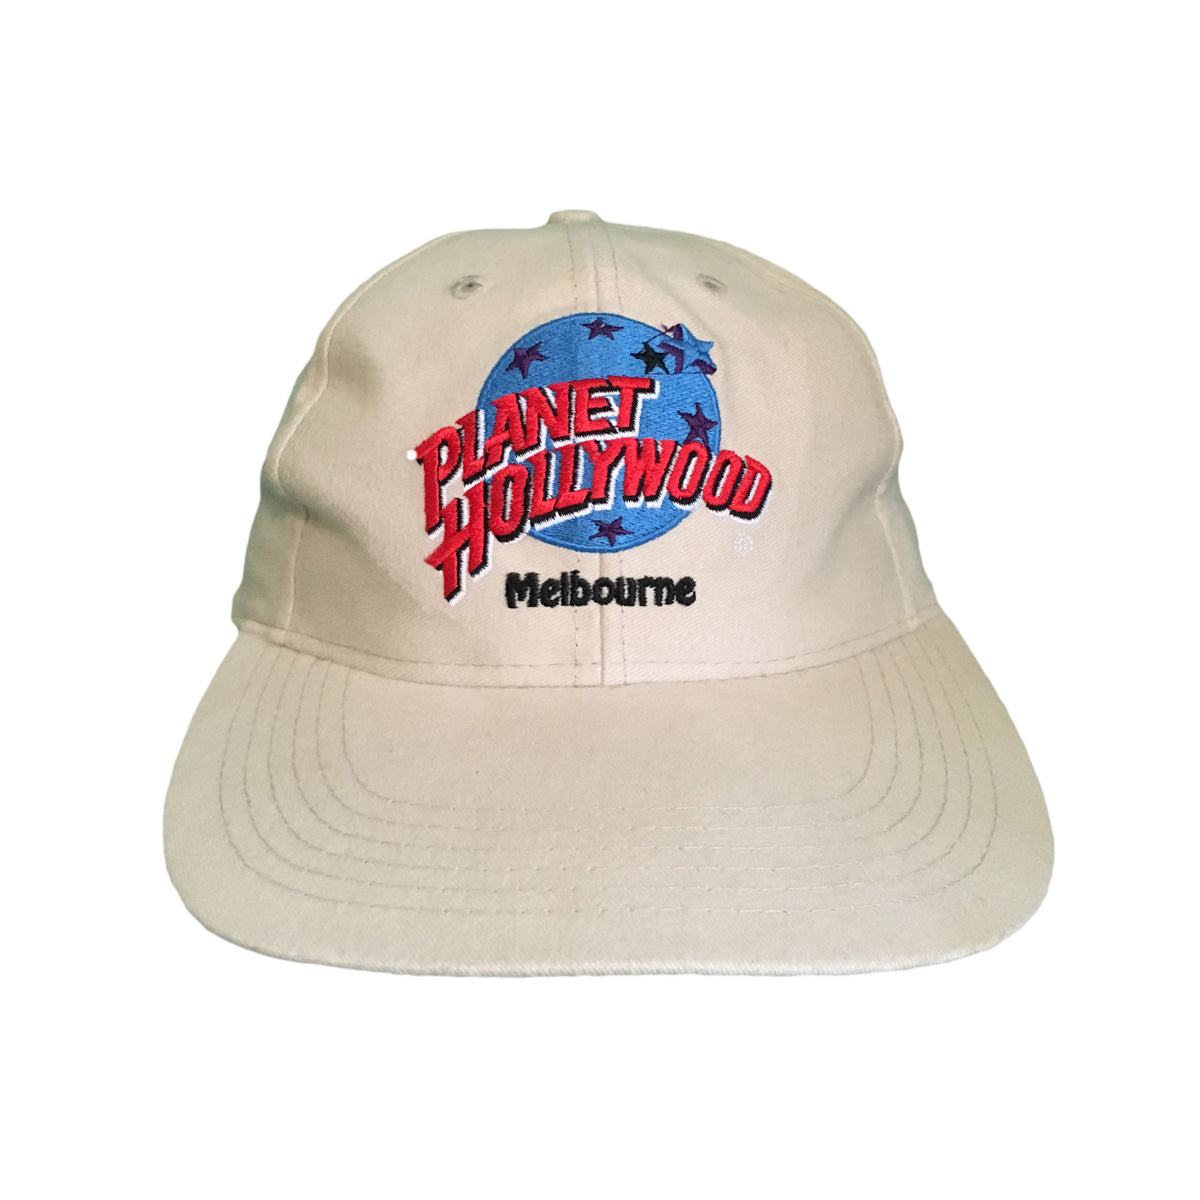 Planet Hollywood Melbourne Baseball Cap